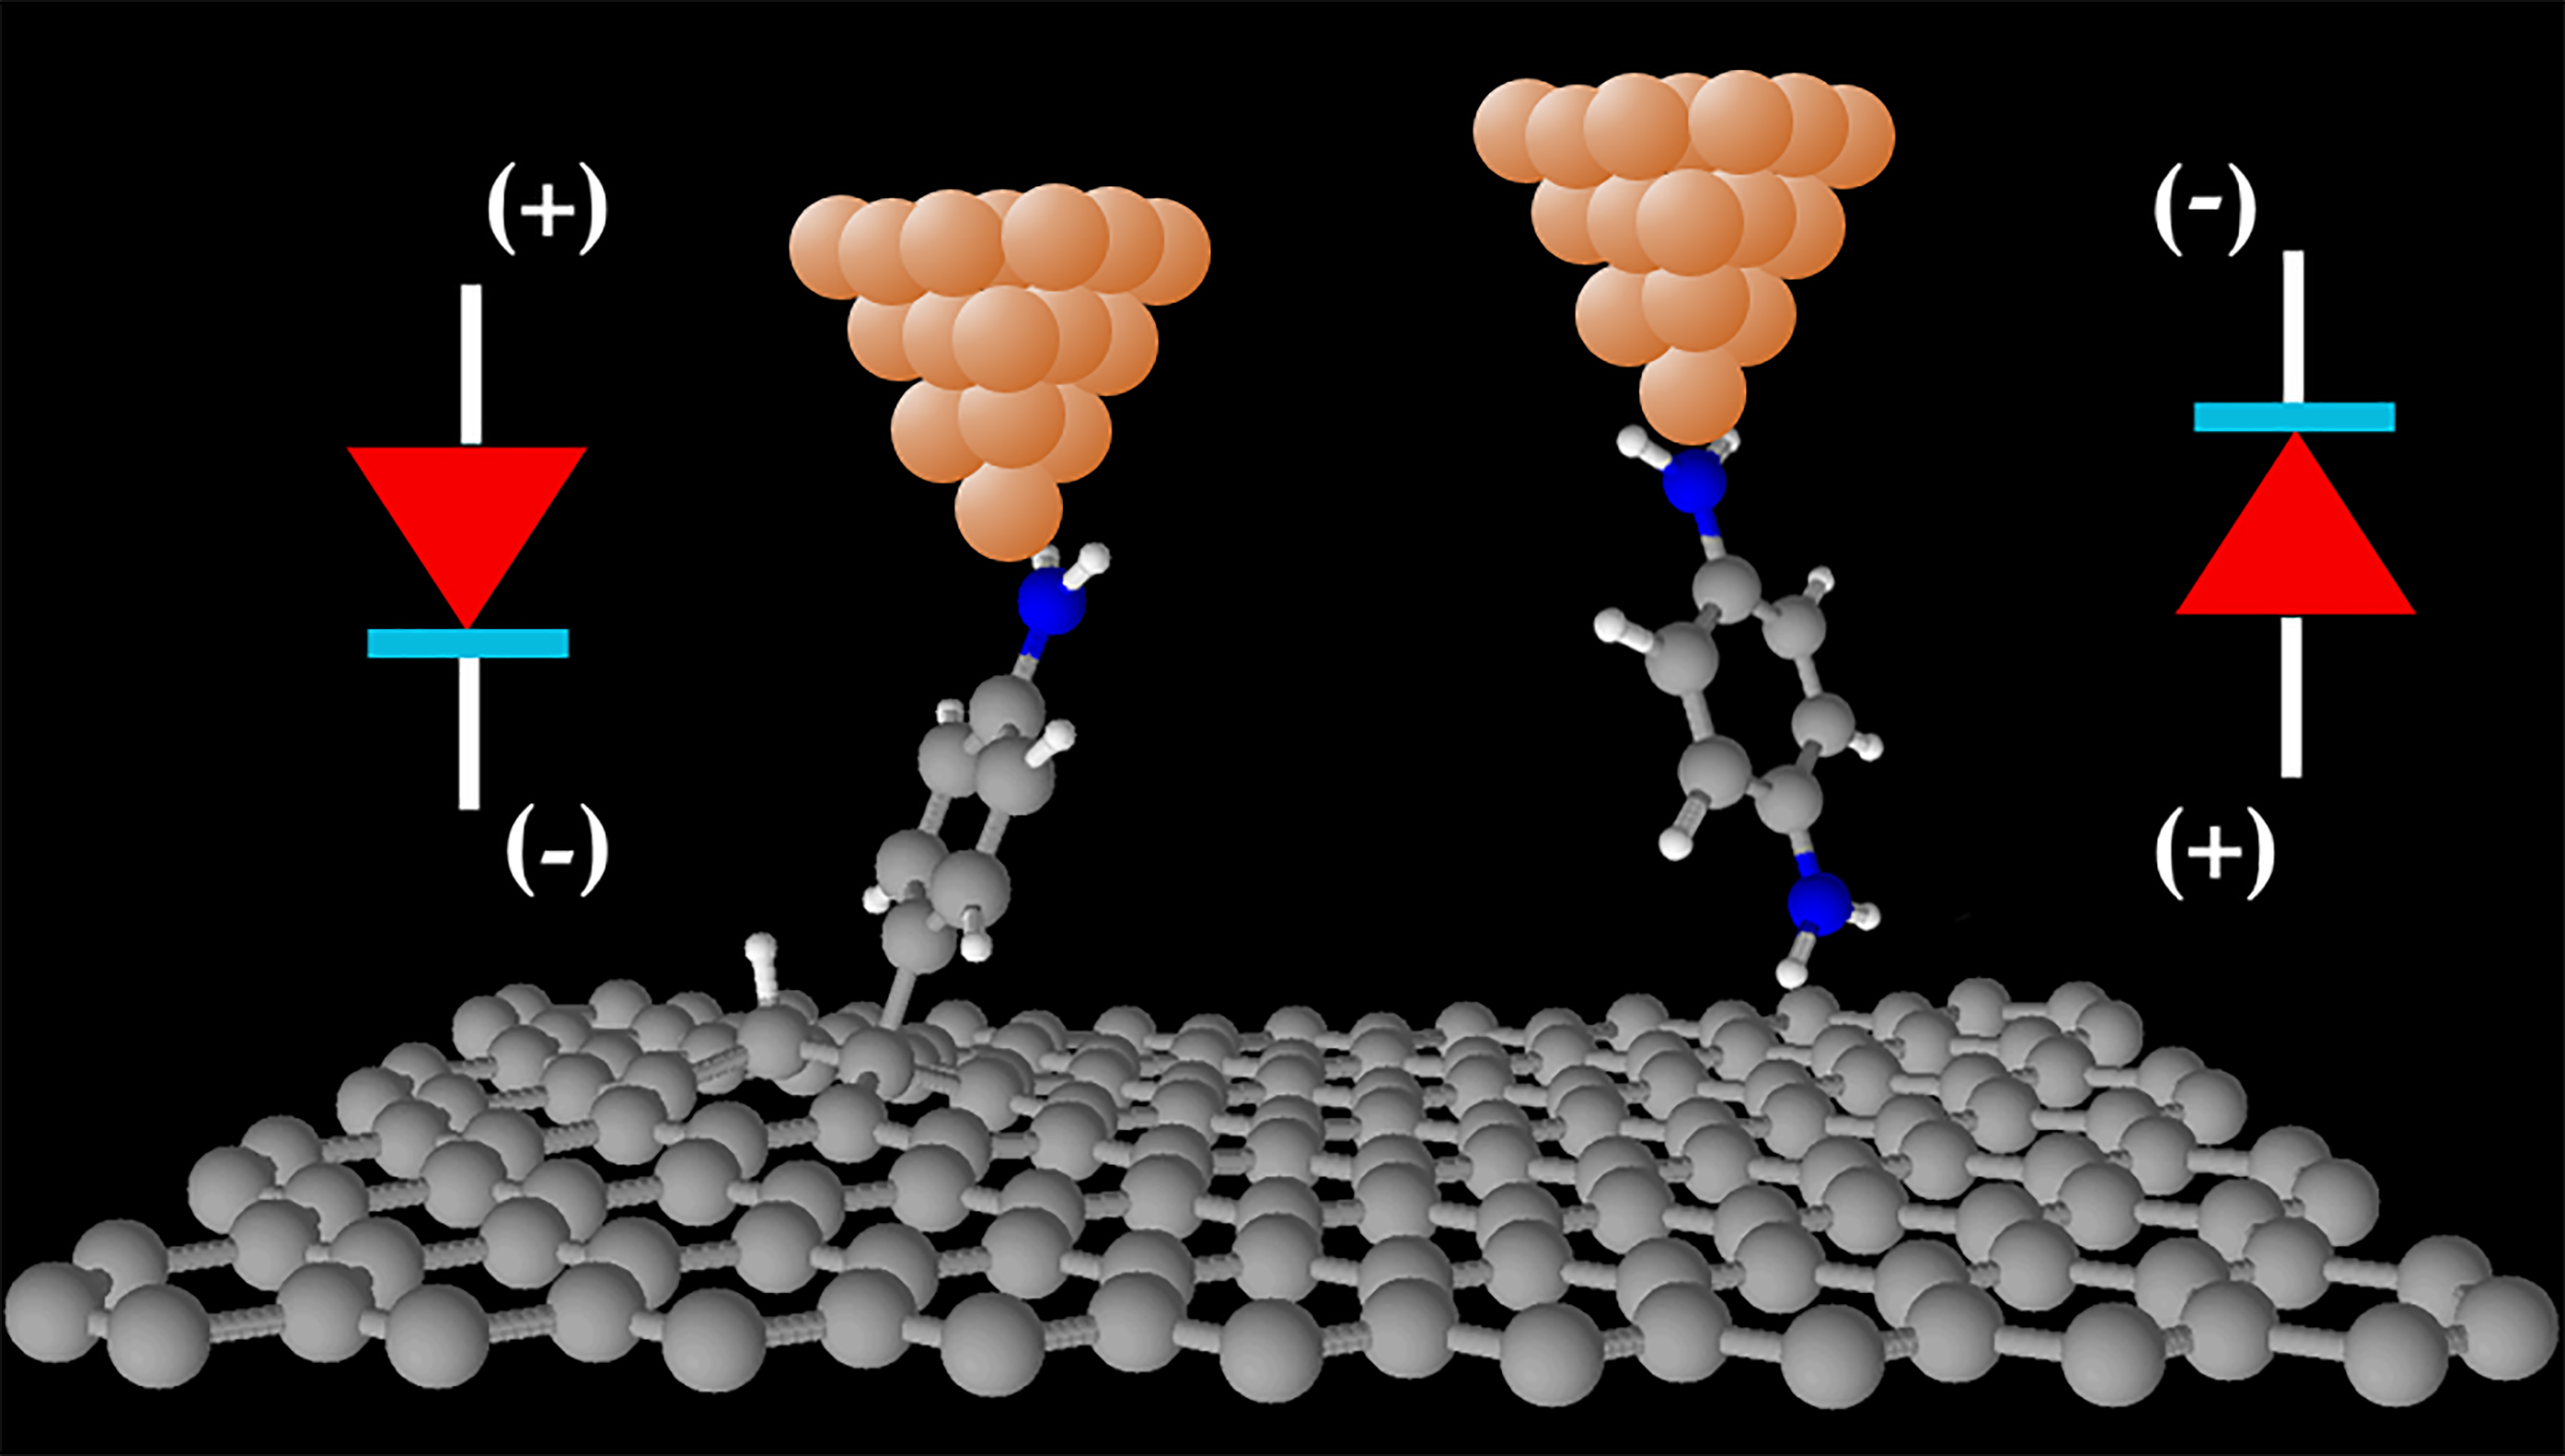 Graphene electrodes offer new functionalities in molecular